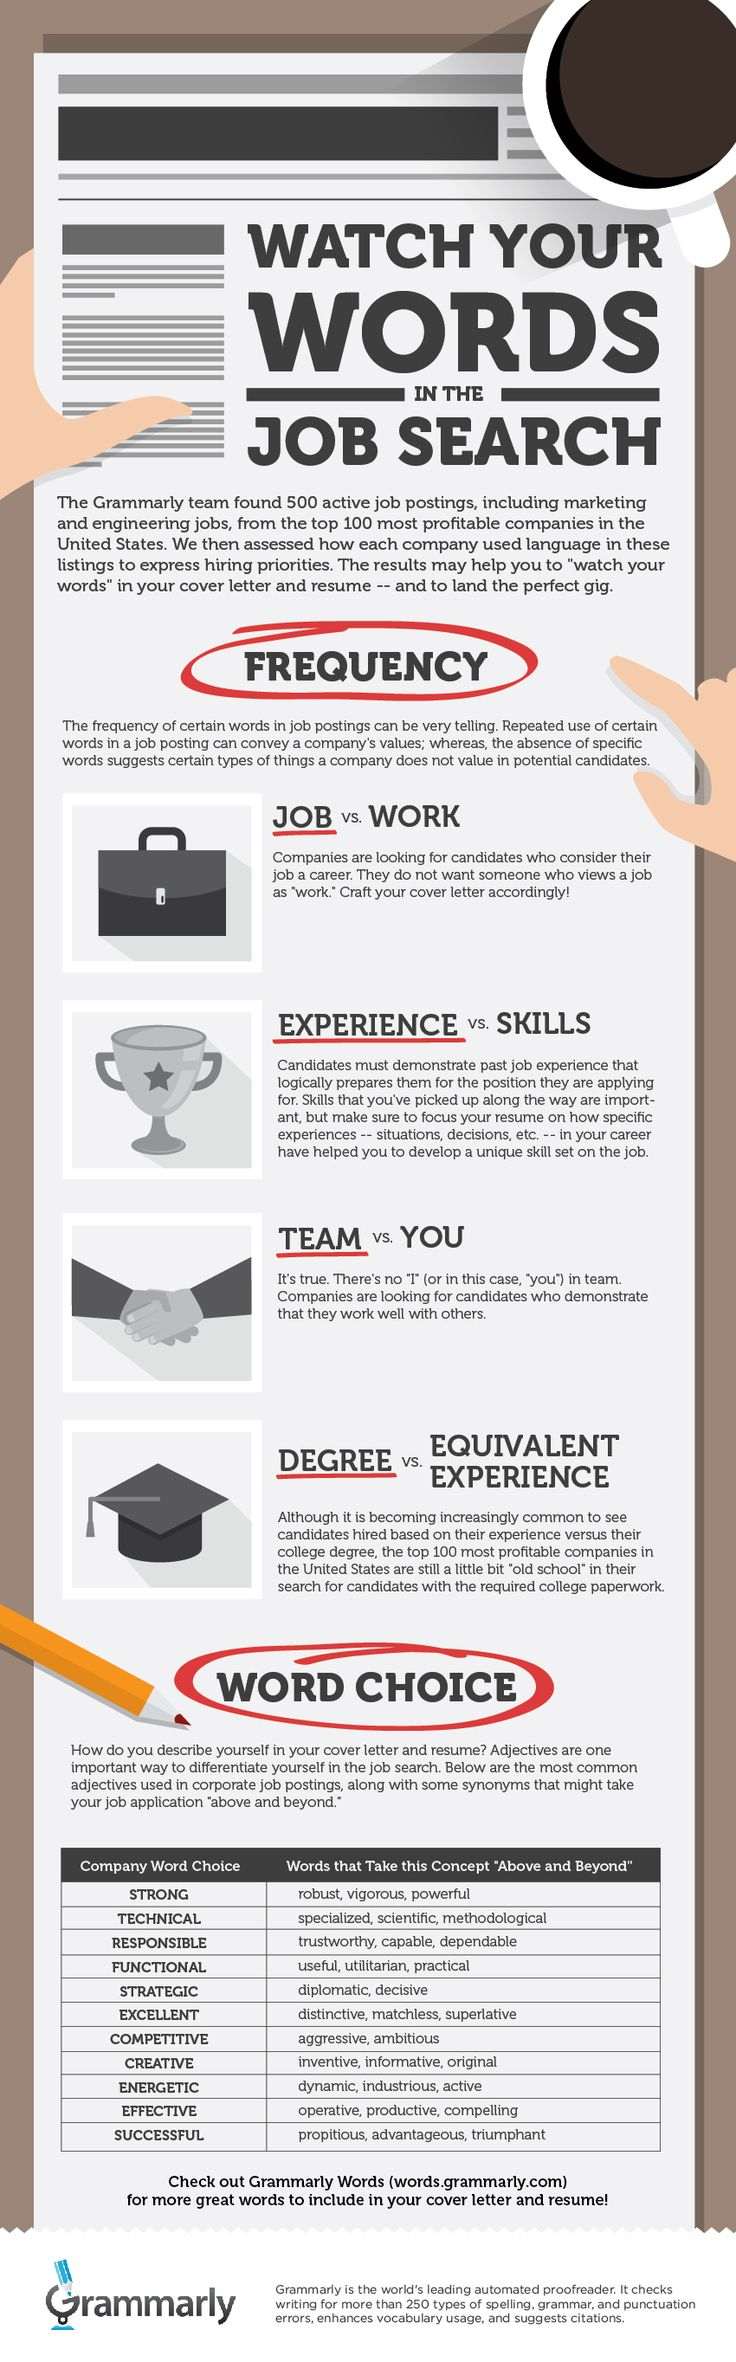 """How Your Word Choice Affects Your Job Search"" (Pinning here because I don't really have another good spot. But I'm thinking of making a job hunting board after seeing a lot of great related graphics.)"